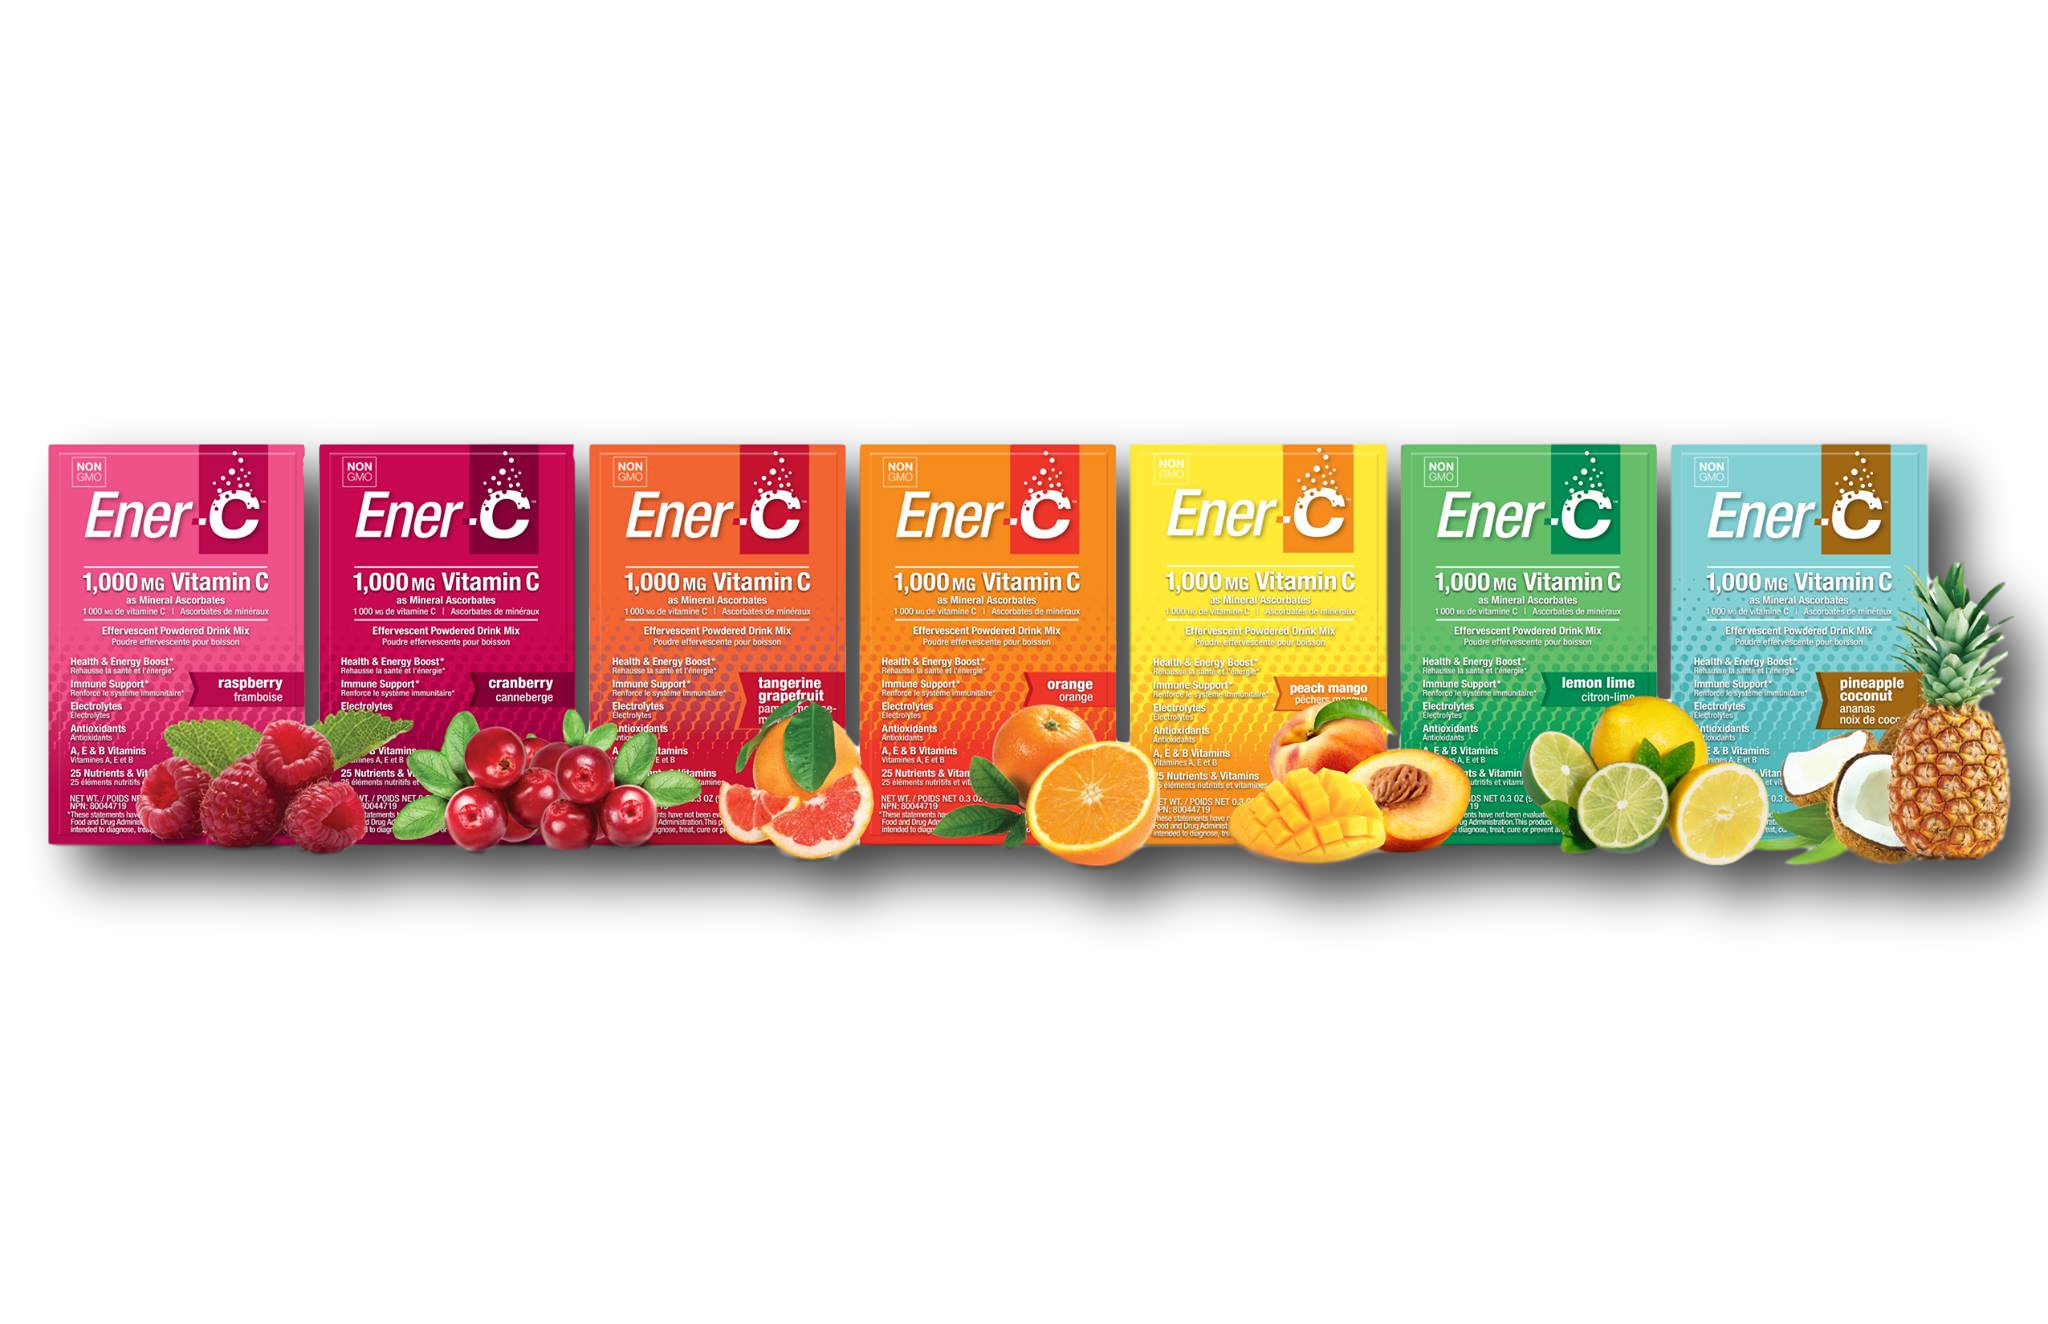 enerc products